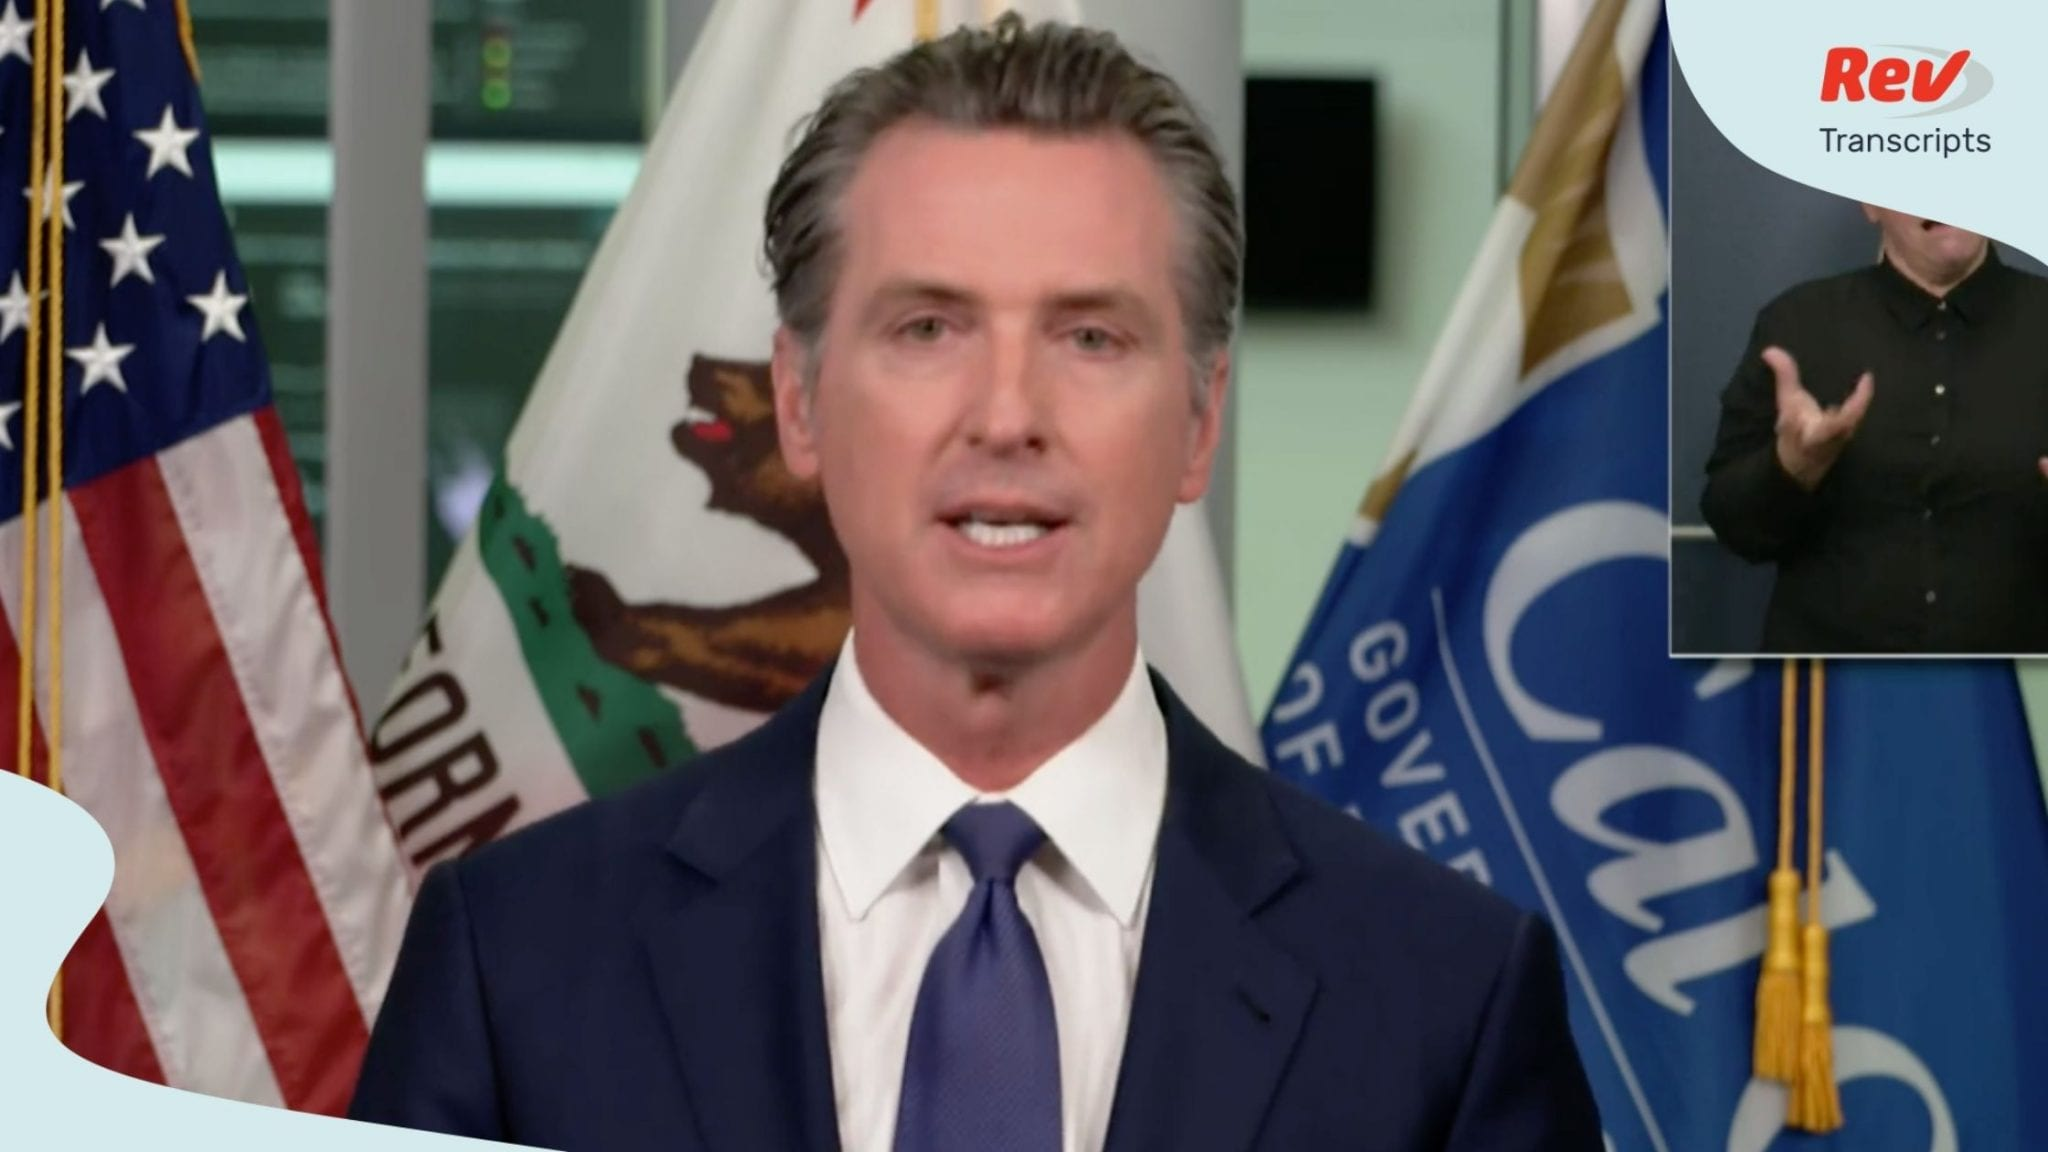 California Governor Gavin Newsom August 3 Press Conference Transcript